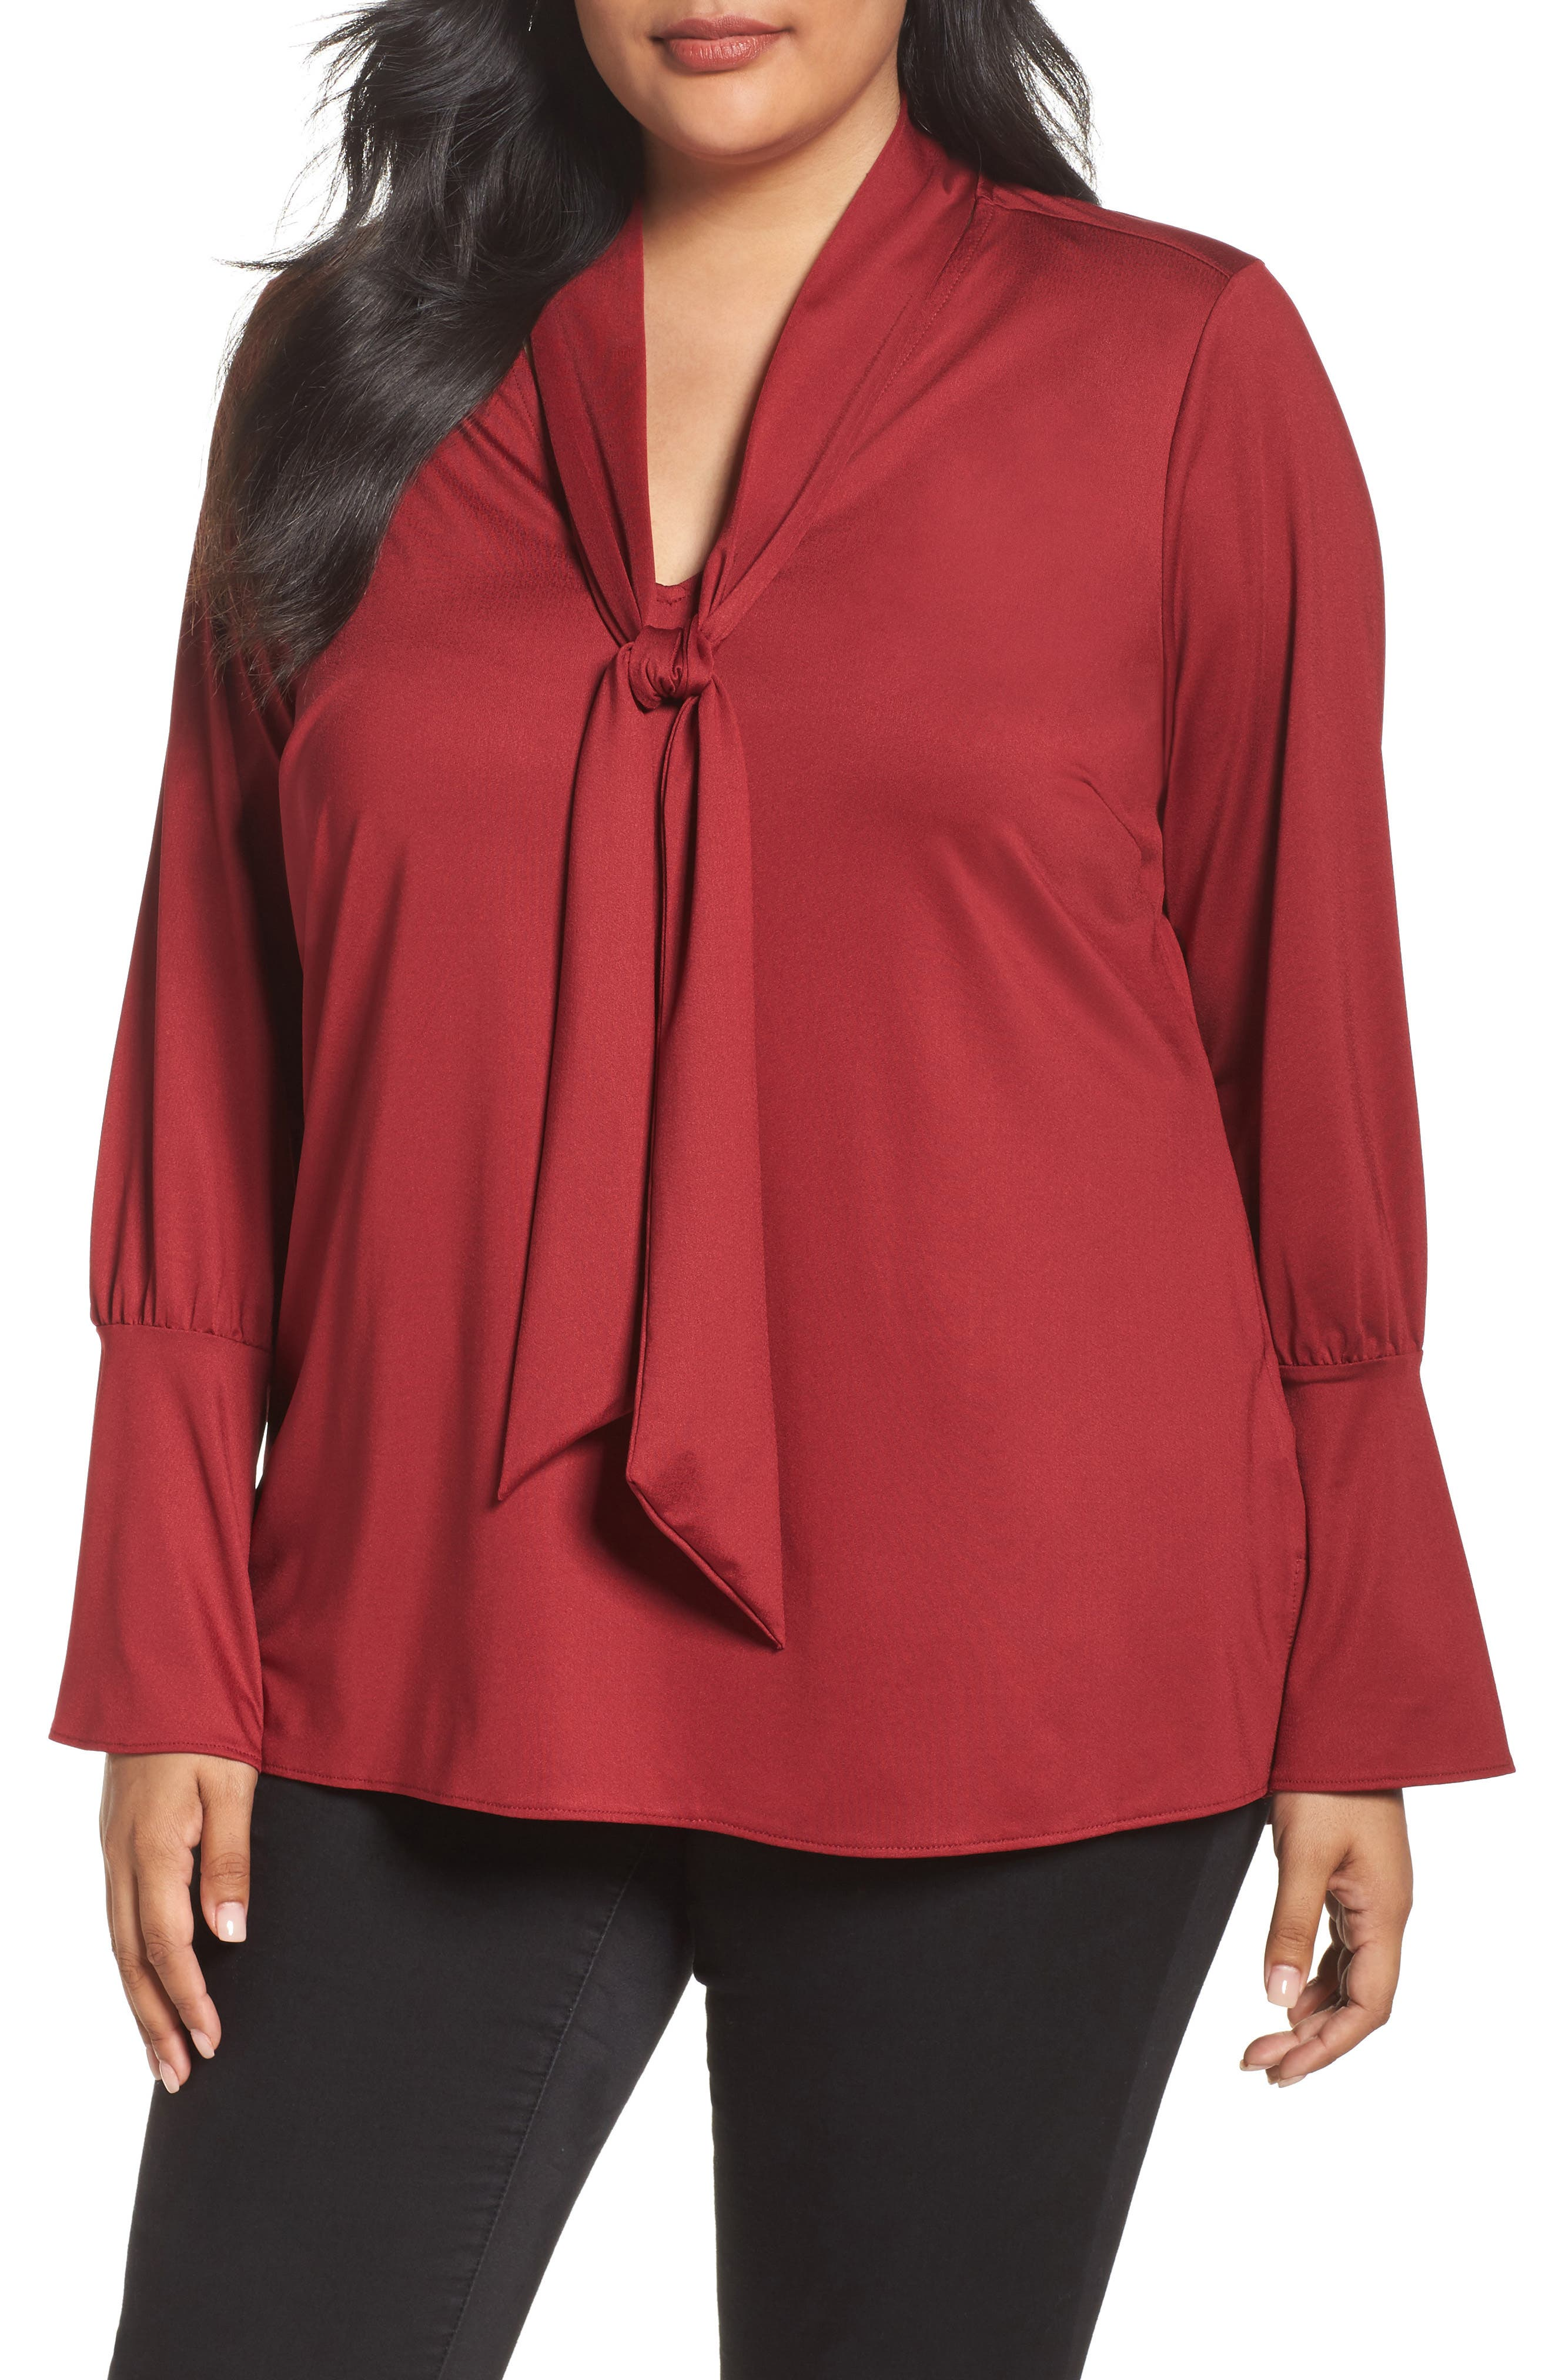 Alternate Image 1 Selected - Melissa McCarthy Seven7 Tie Neck Top (Plus Size)